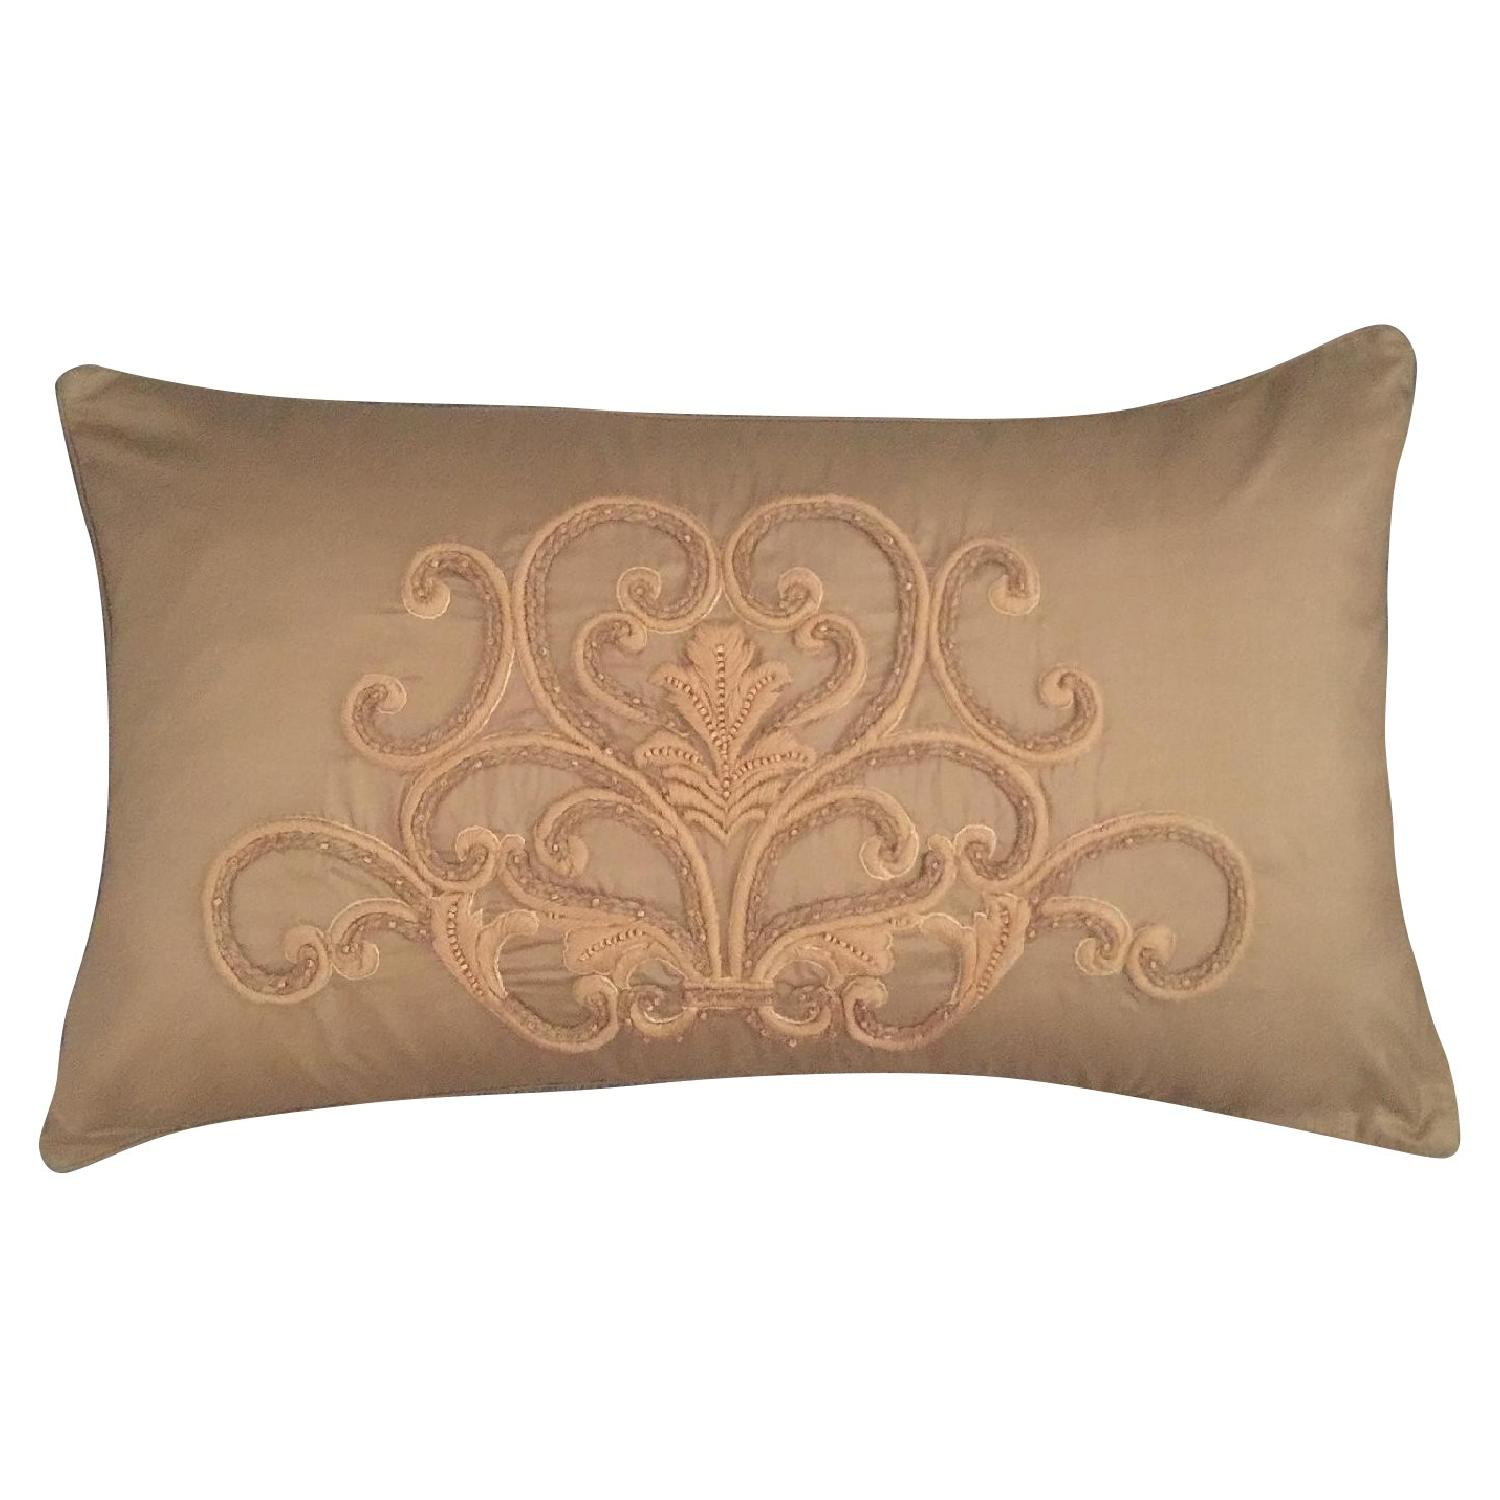 Scroll Medallion Throw Pillow